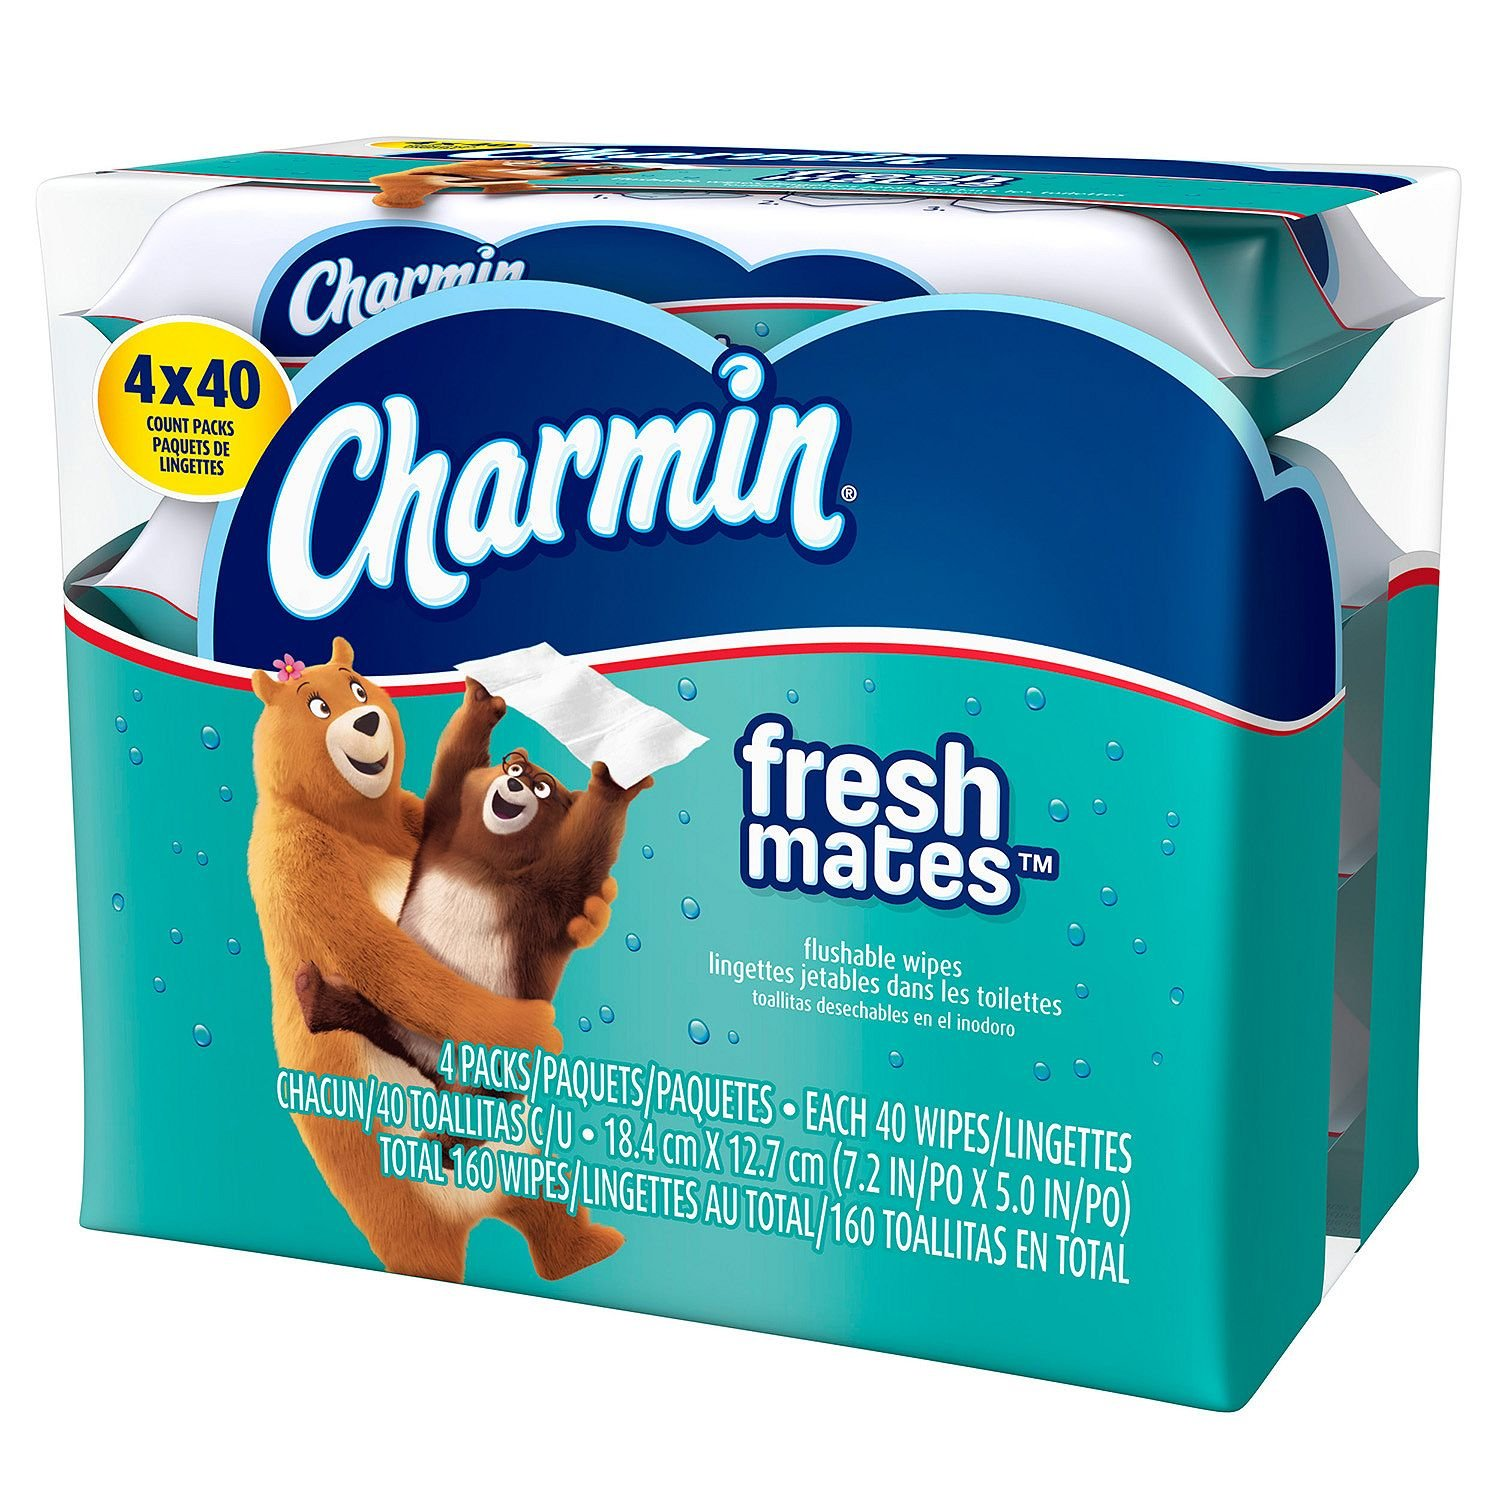 Amazon.com: Product of Charmin Freshmates Flushable Wet Wipes (4pk, 40ct. refills) - Toilet Paper [Bulk Savings]